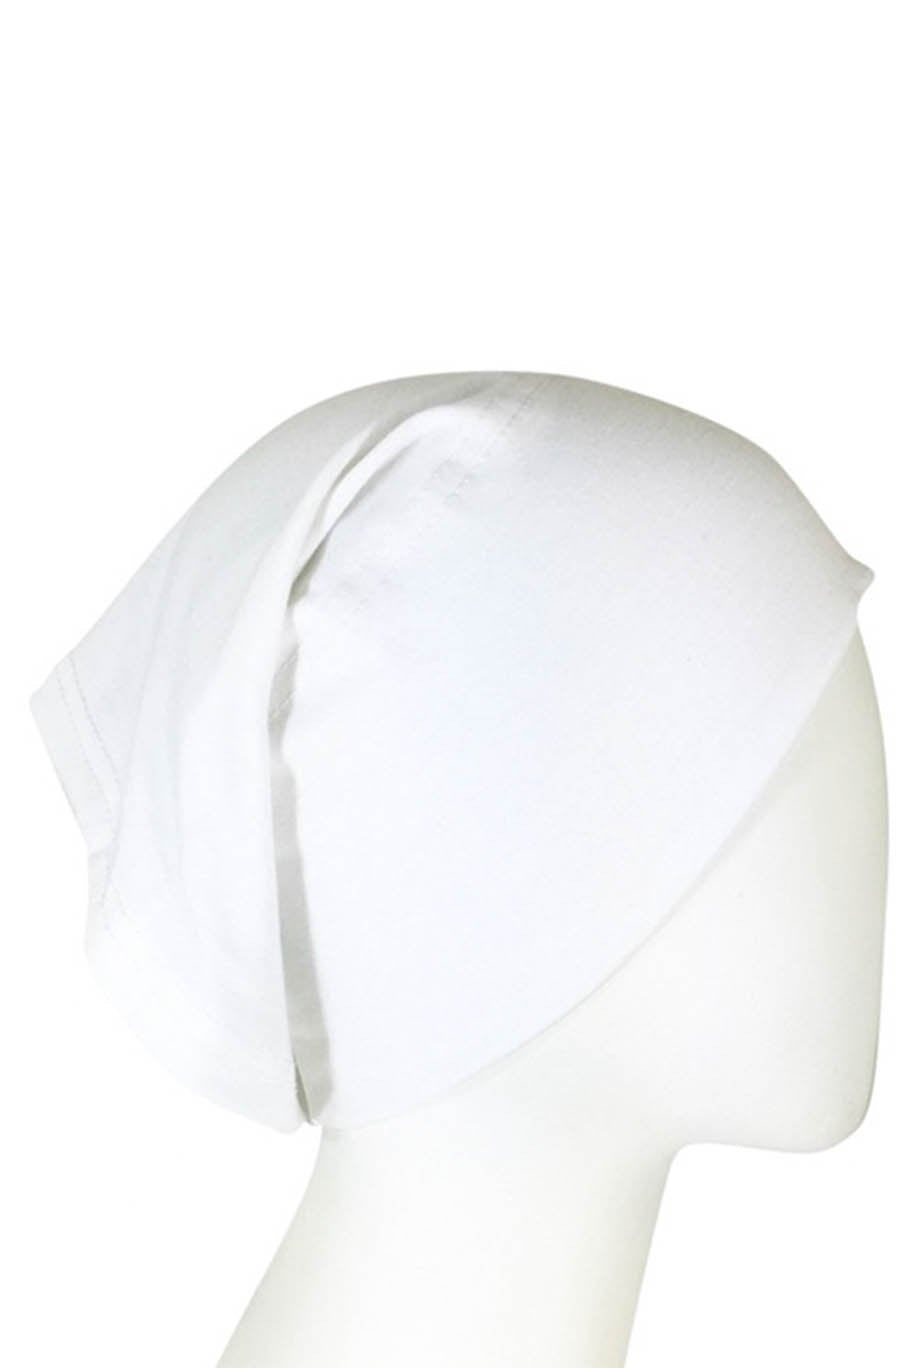 White Under-cap for Hijab - Under-Caps - The Modest Look